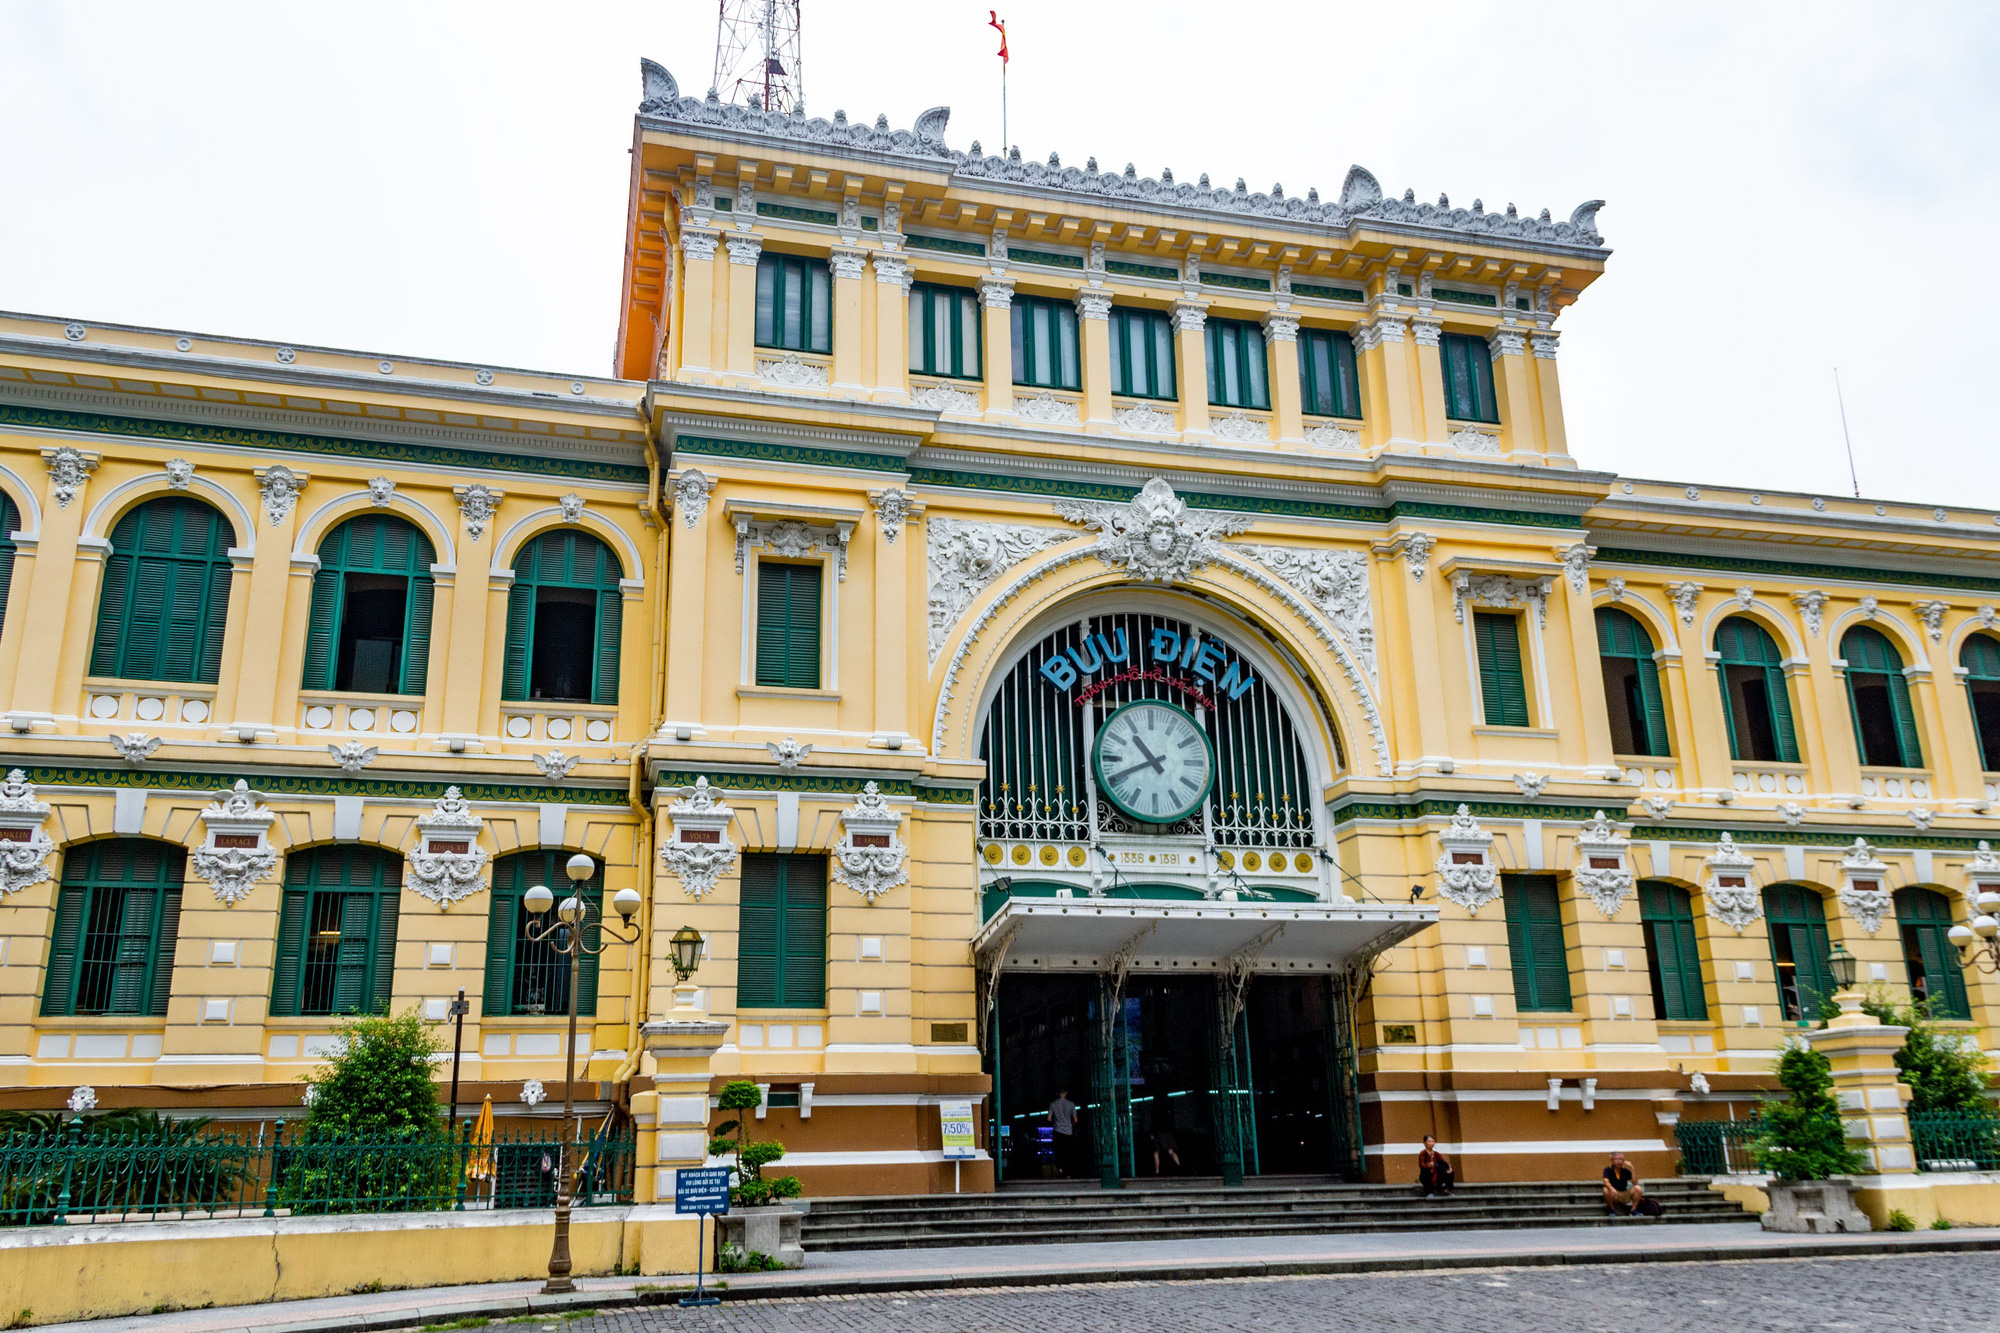 The Saigon Central Post Office, located in Ben Nghe Ward, District 1, Ho Chi Minh City, Vietnam, is seen in the photo. Photo: Tran Hong Ngoc / Tuoi Tre